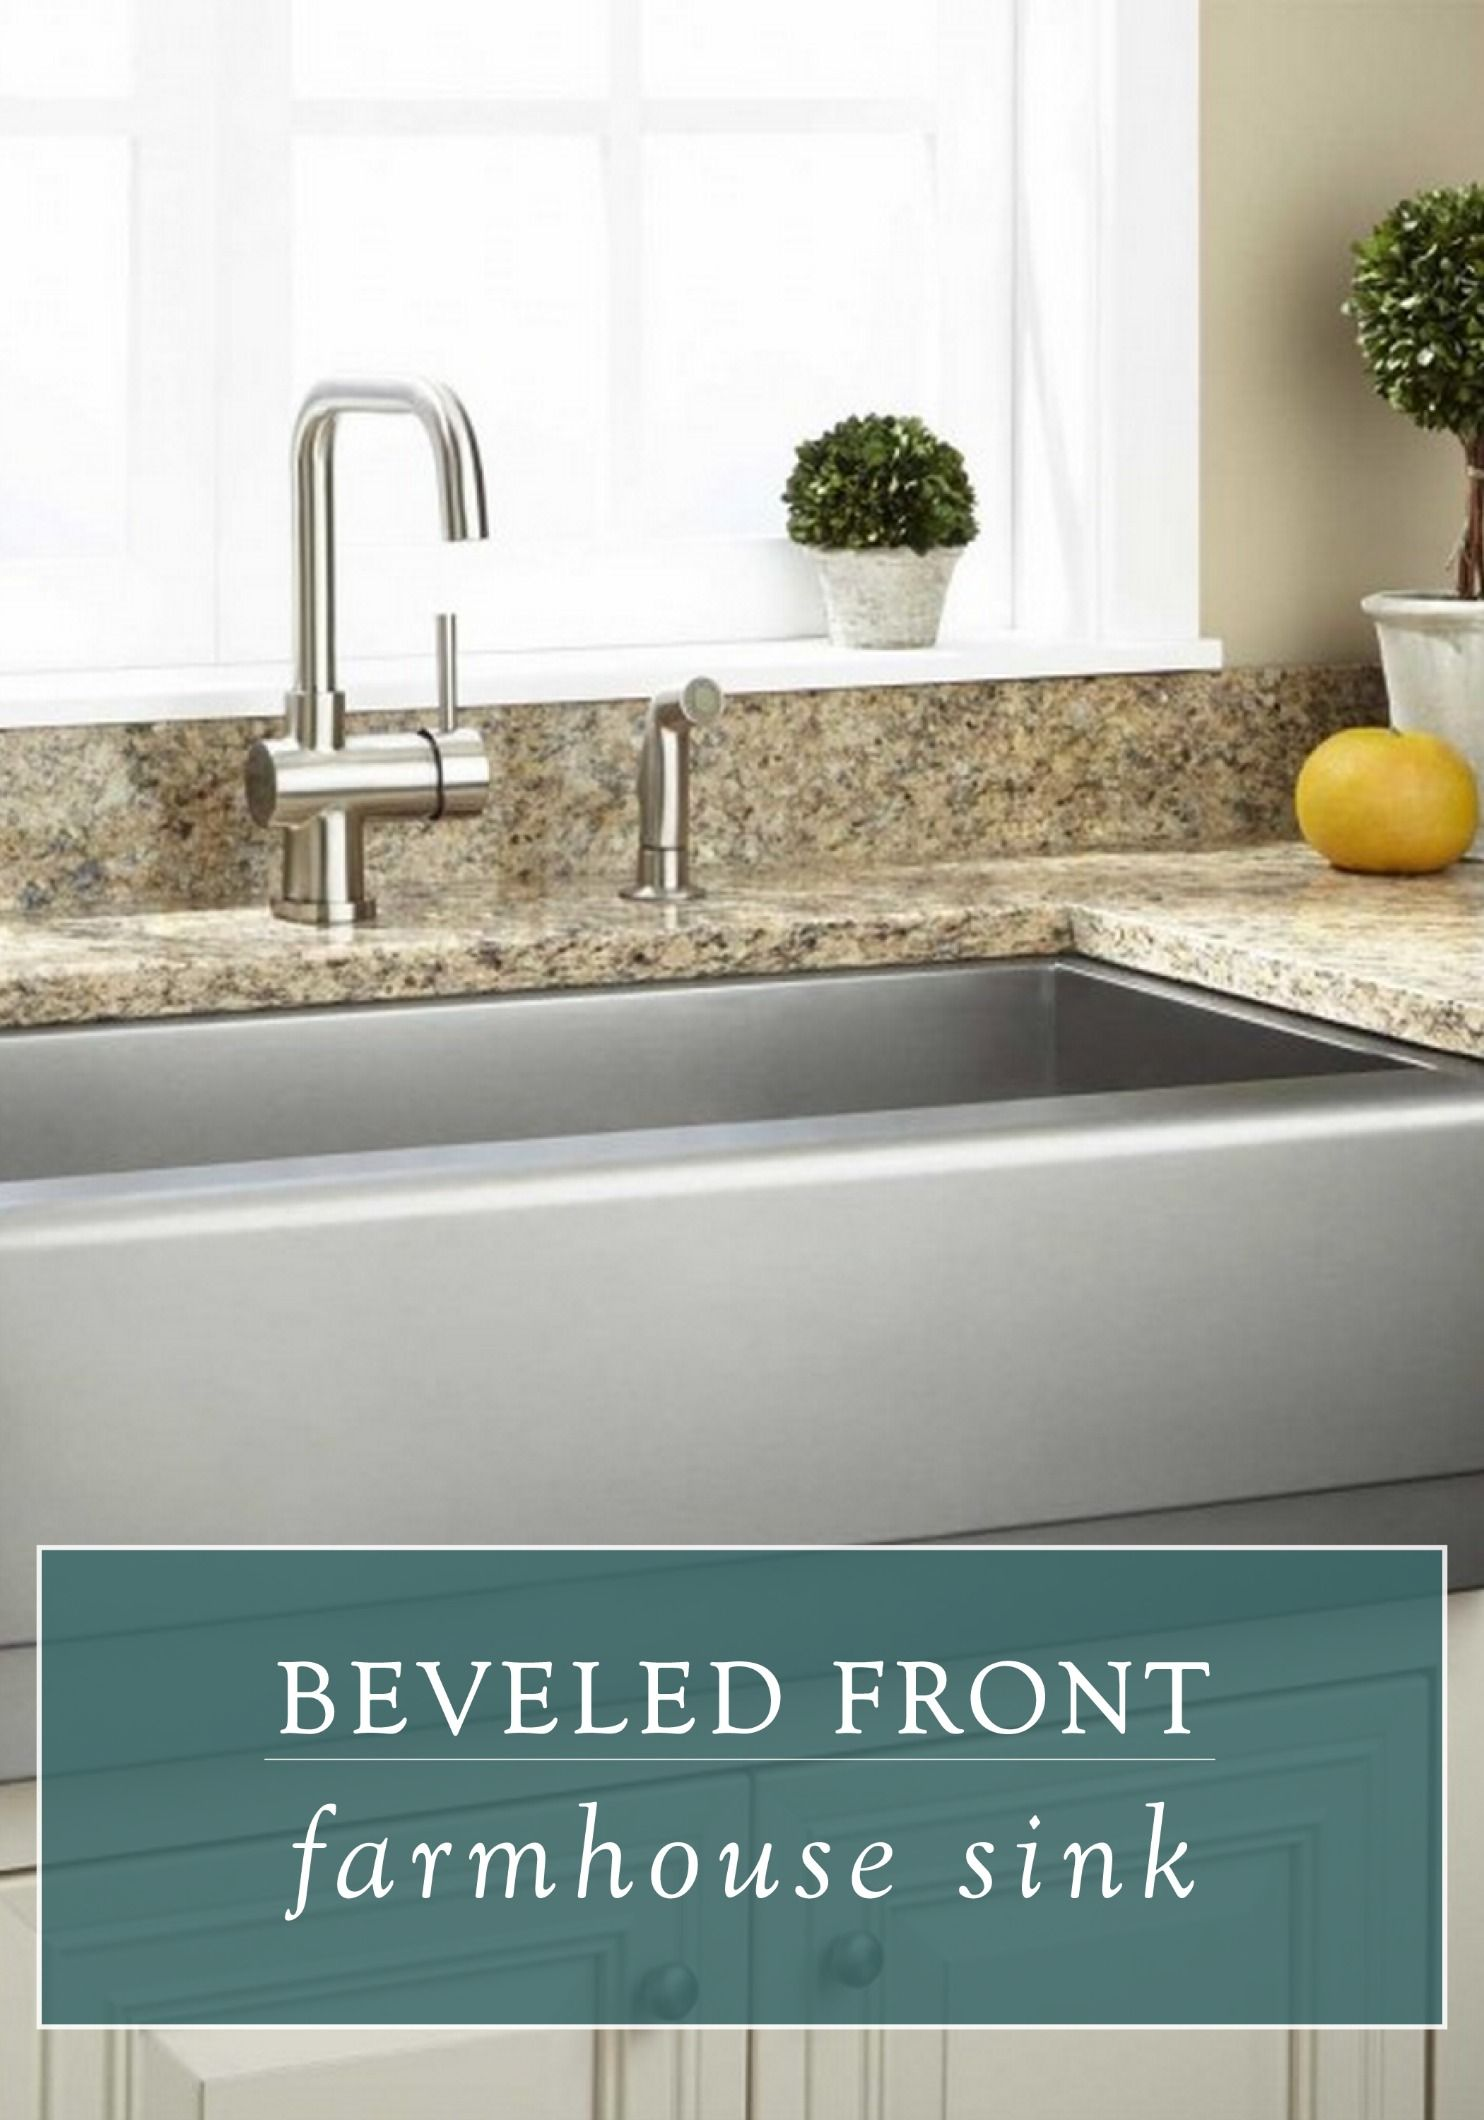 This Large Farmhouse Sink Features A Single Oversized Basin With A